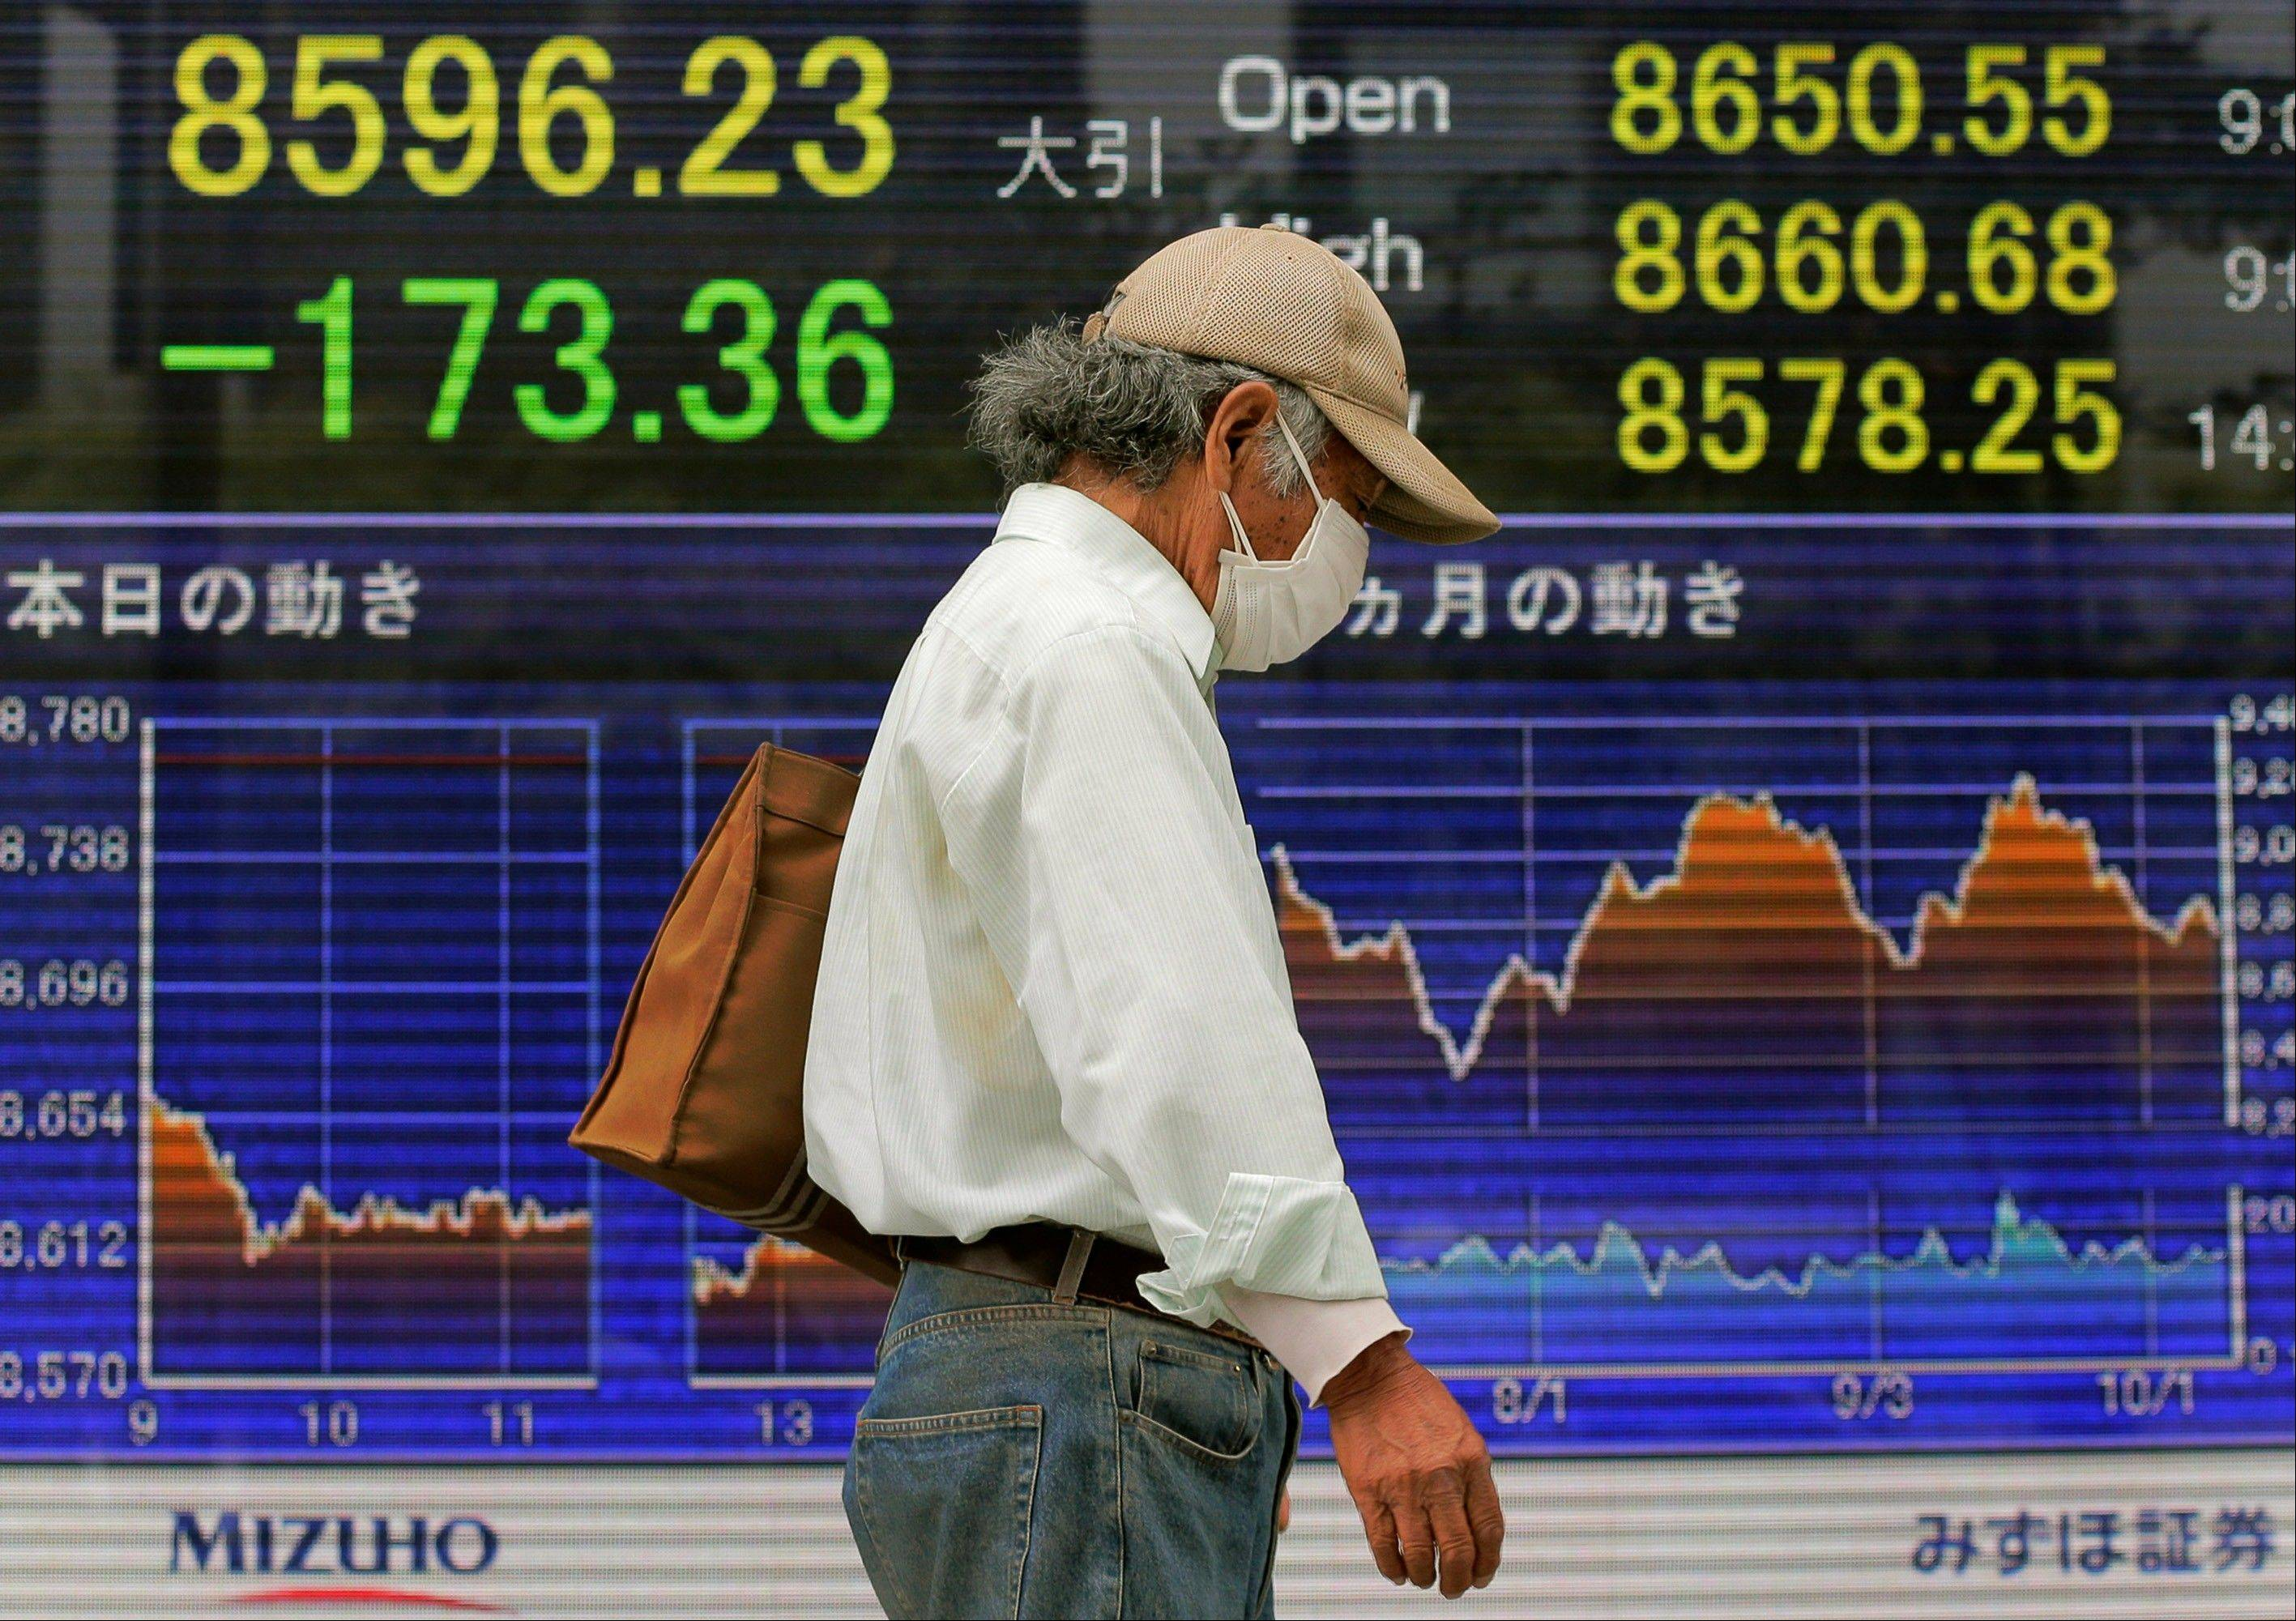 A man walks in front of the electronic stock board of a securities firm showing Japan�s Nikkei 225 index falling 173.36 points to 8596.23 in Tokyo, Wednesday.